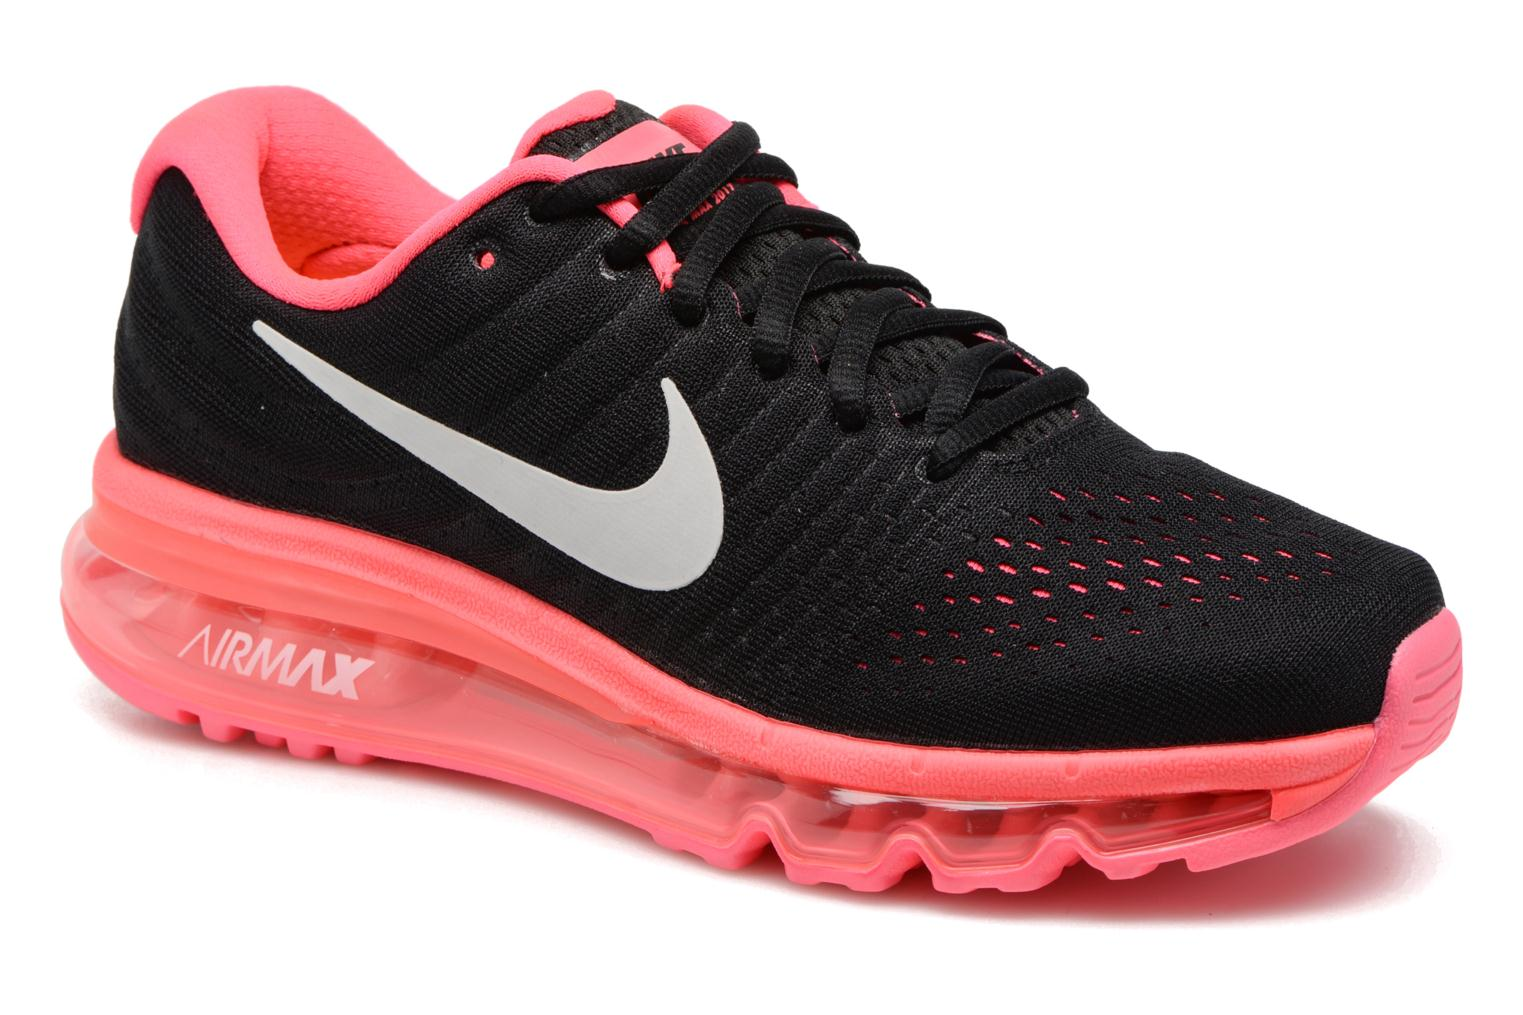 Nike Air Max 2017 (Gs) Black/White-Racer Pink-Hot Punch